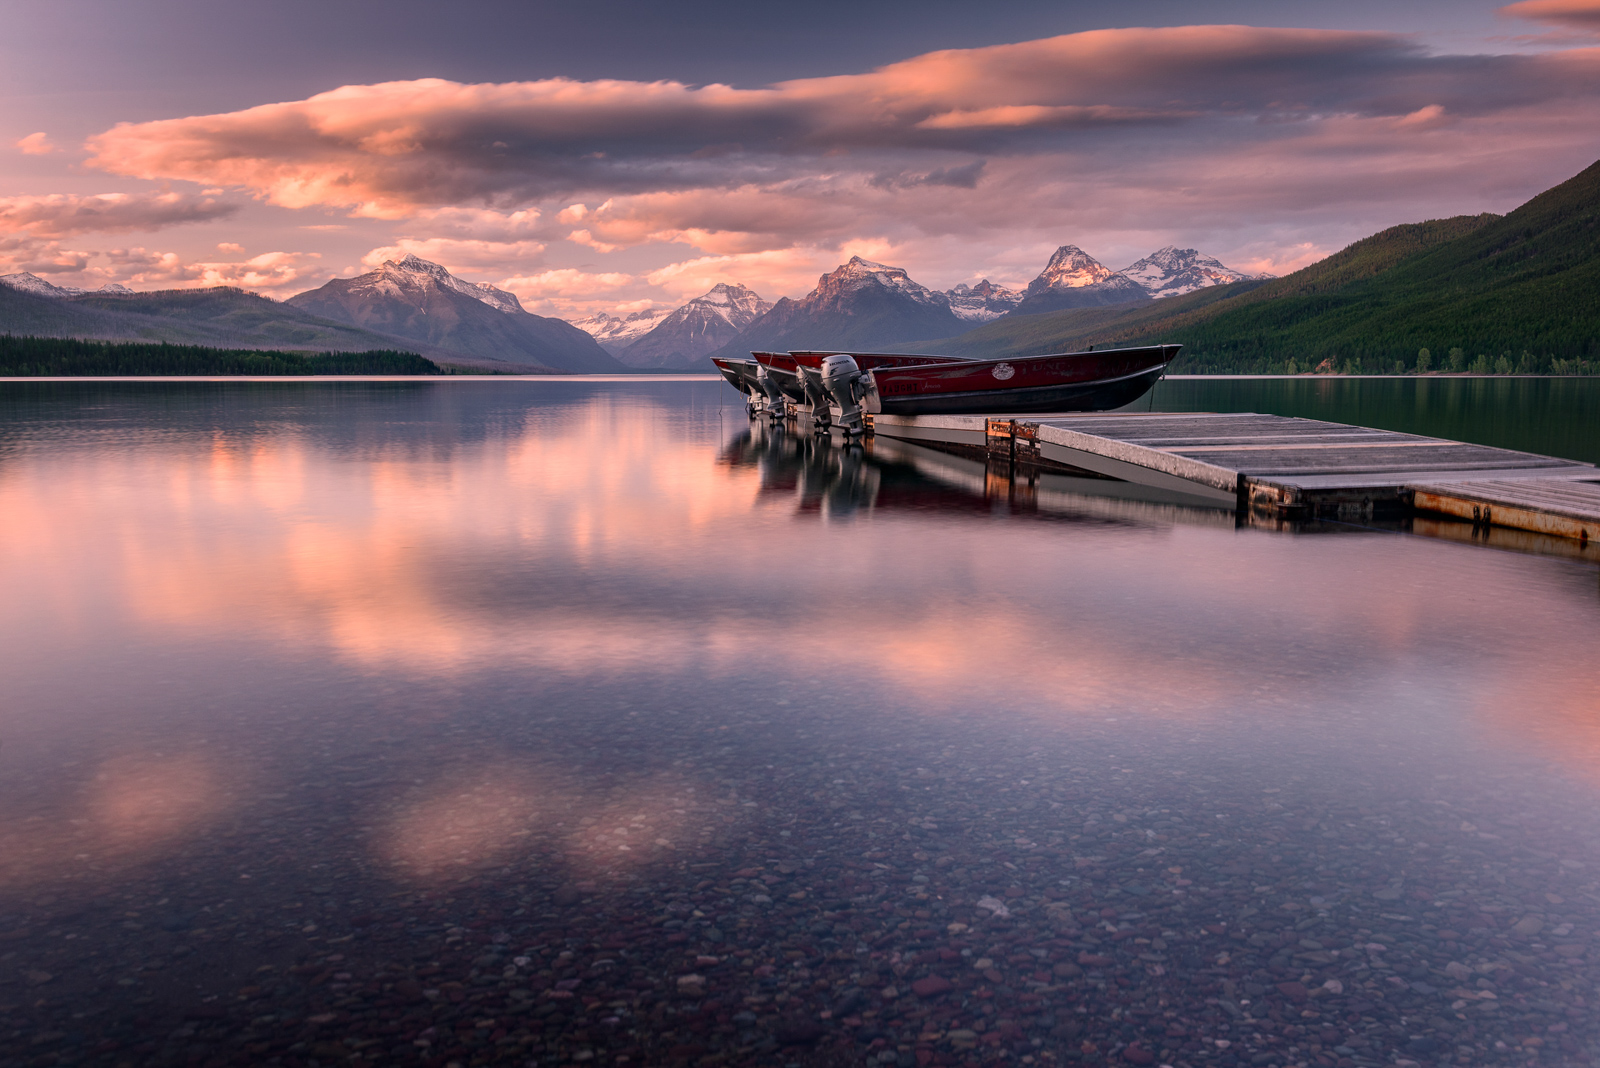 Glacier National Park In Montana Was Named One Of The 50 Most Beautiful Places In The World